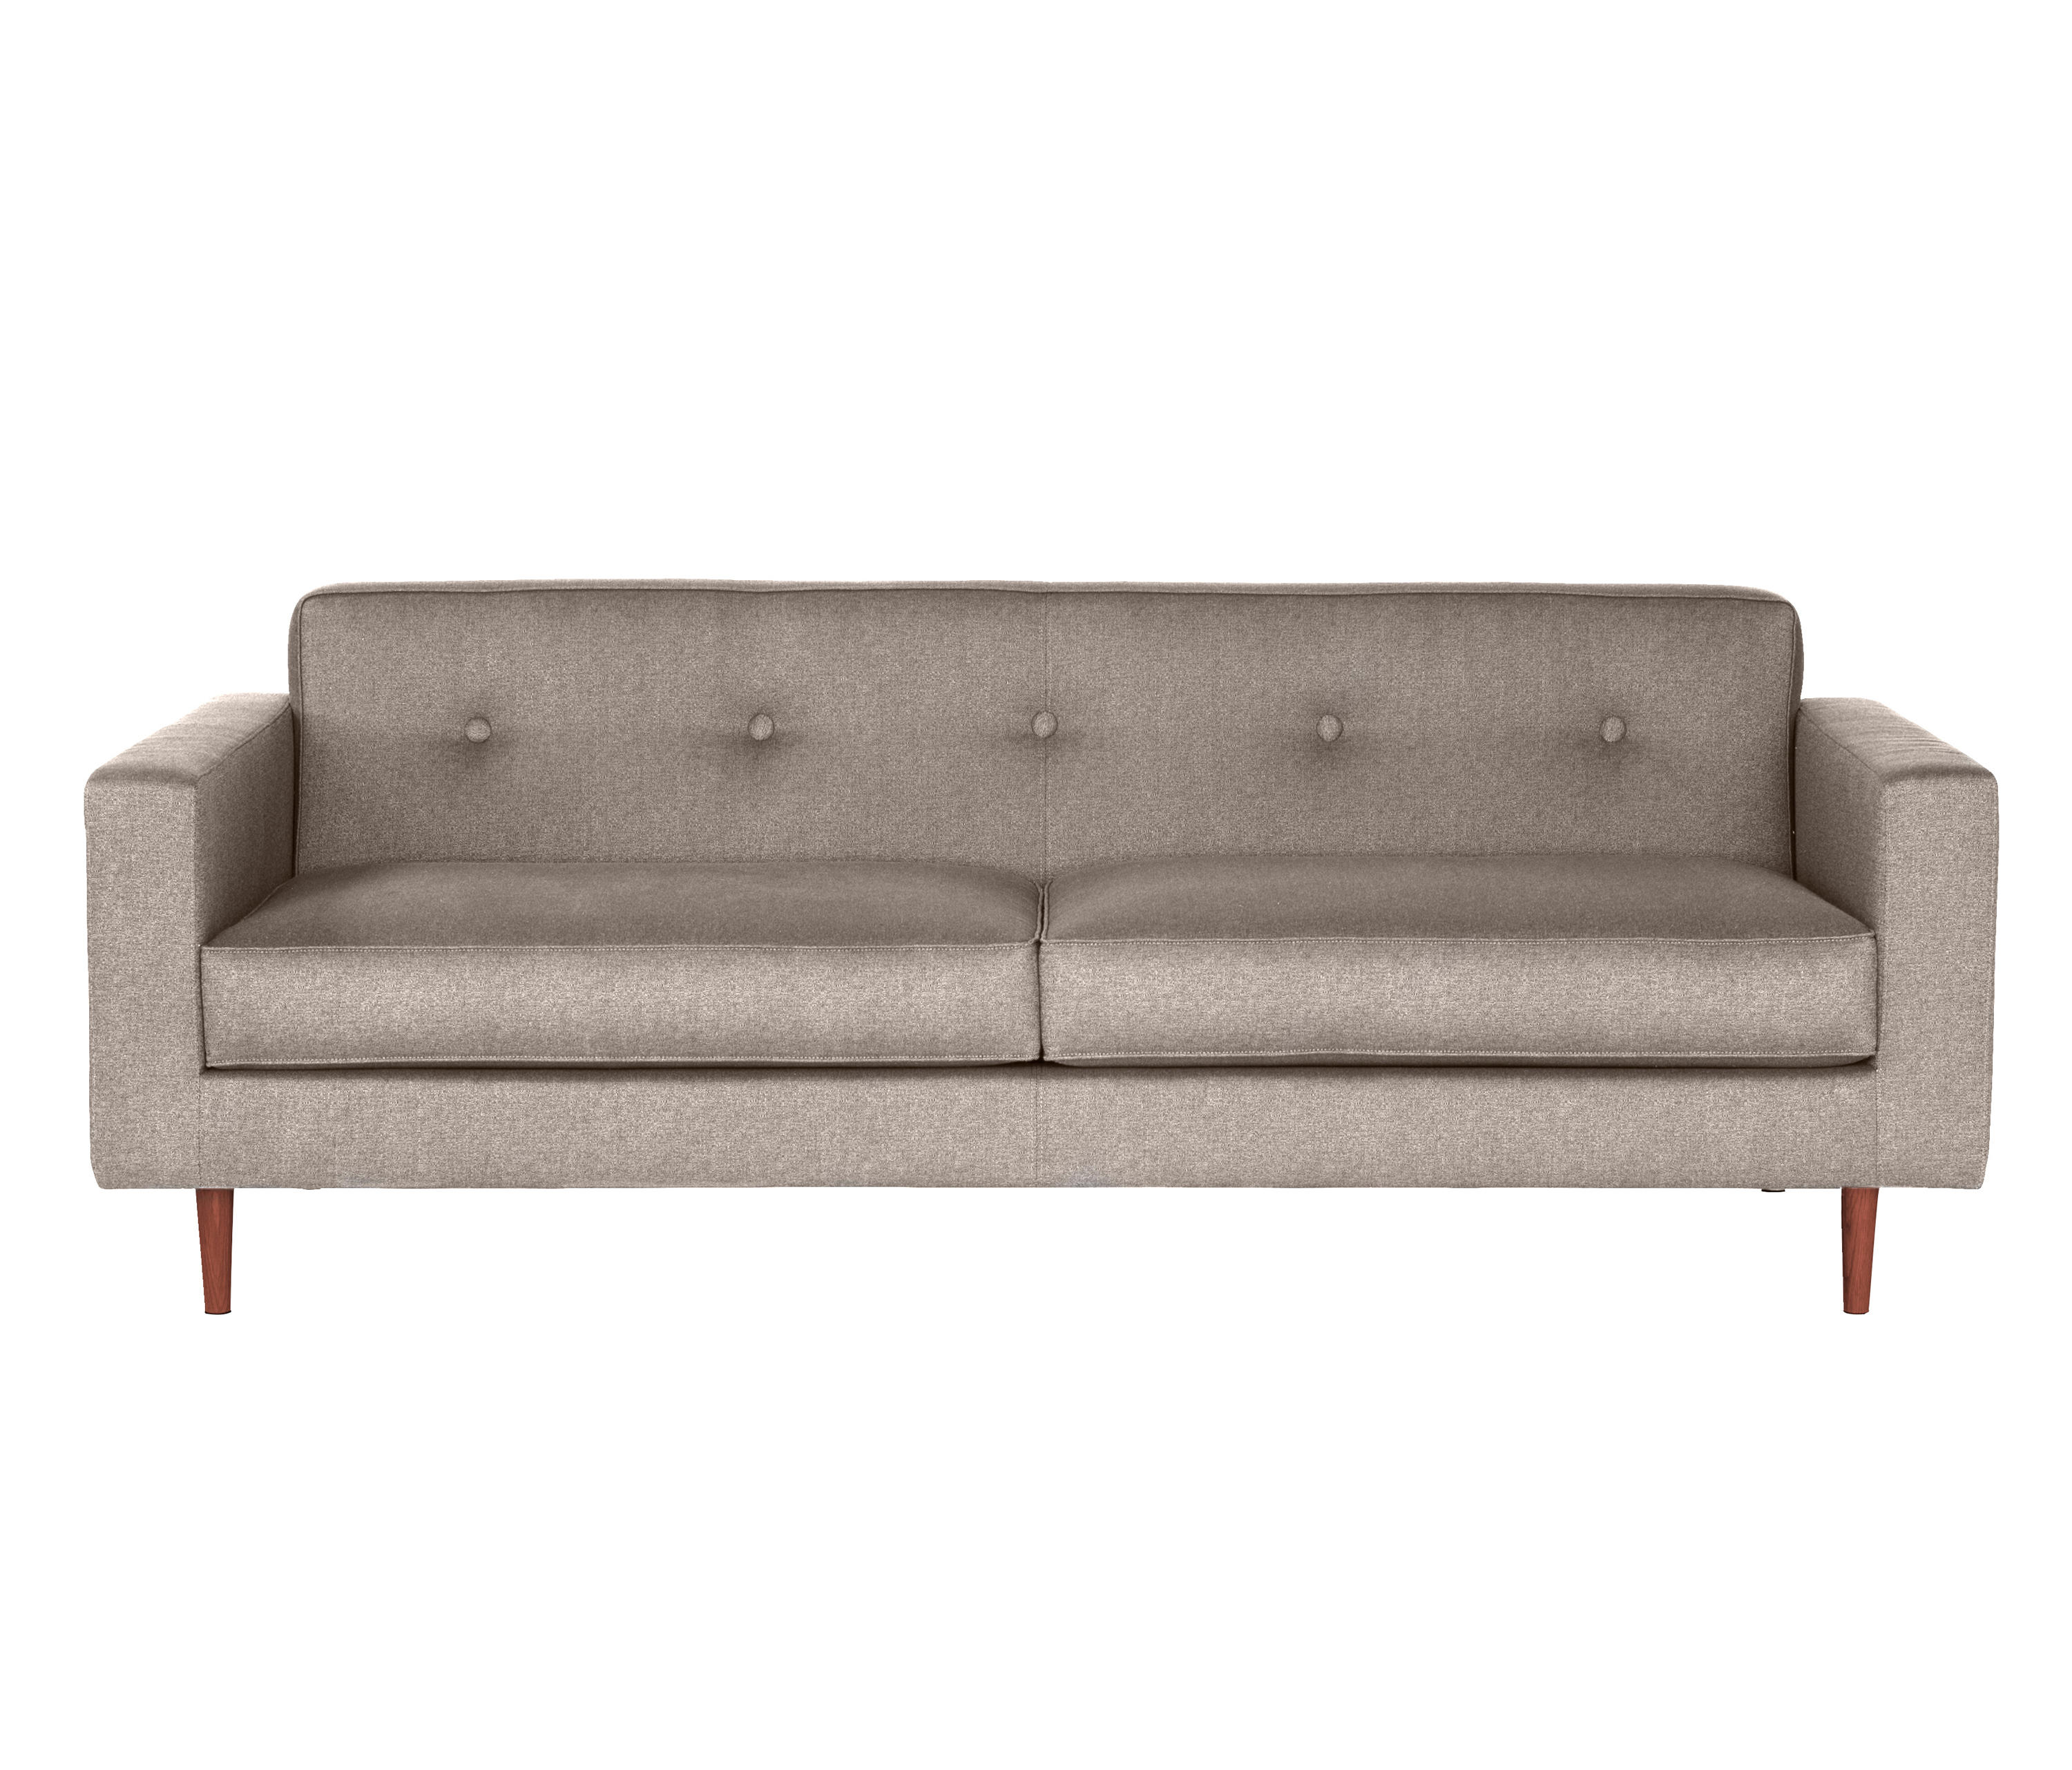 Moulton 3 Seat Sofa Lounge Sofas From Case Furniture